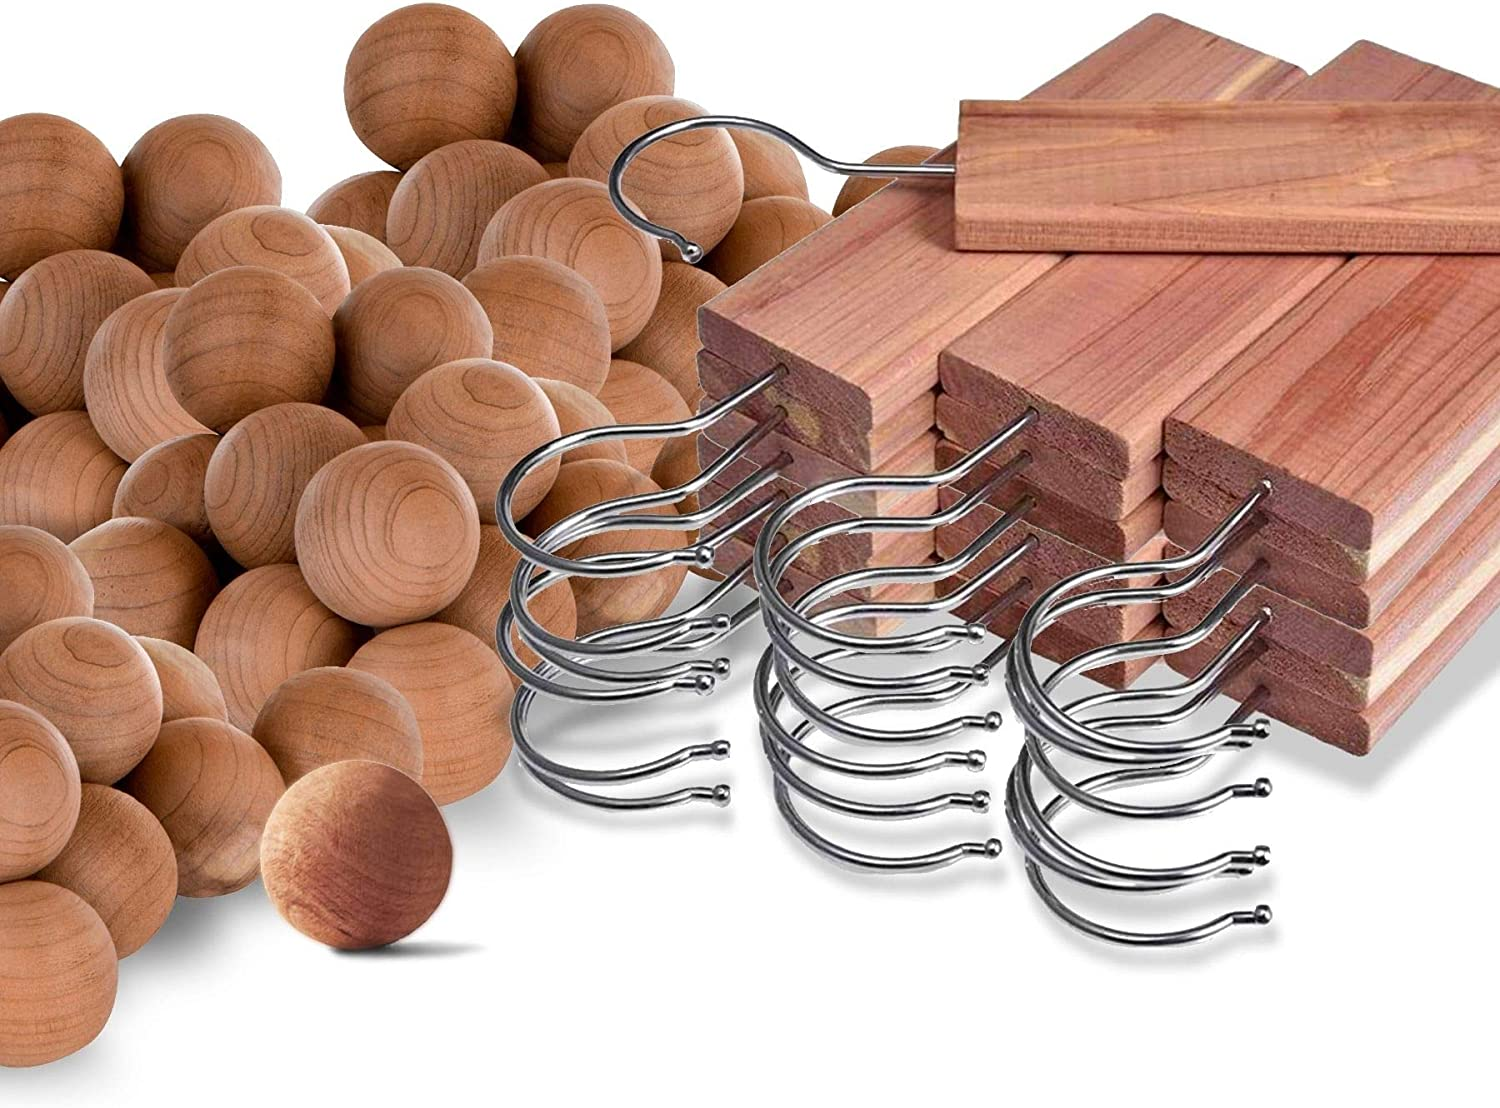 Cedar Home Cedar Blocks for Clothes Storage | Cedar Hang Ups & Cedar Balls | Clothes Protection | 22 Pieces, 12 Cedar Hang Ups & Bonus 10 Cedar Balls